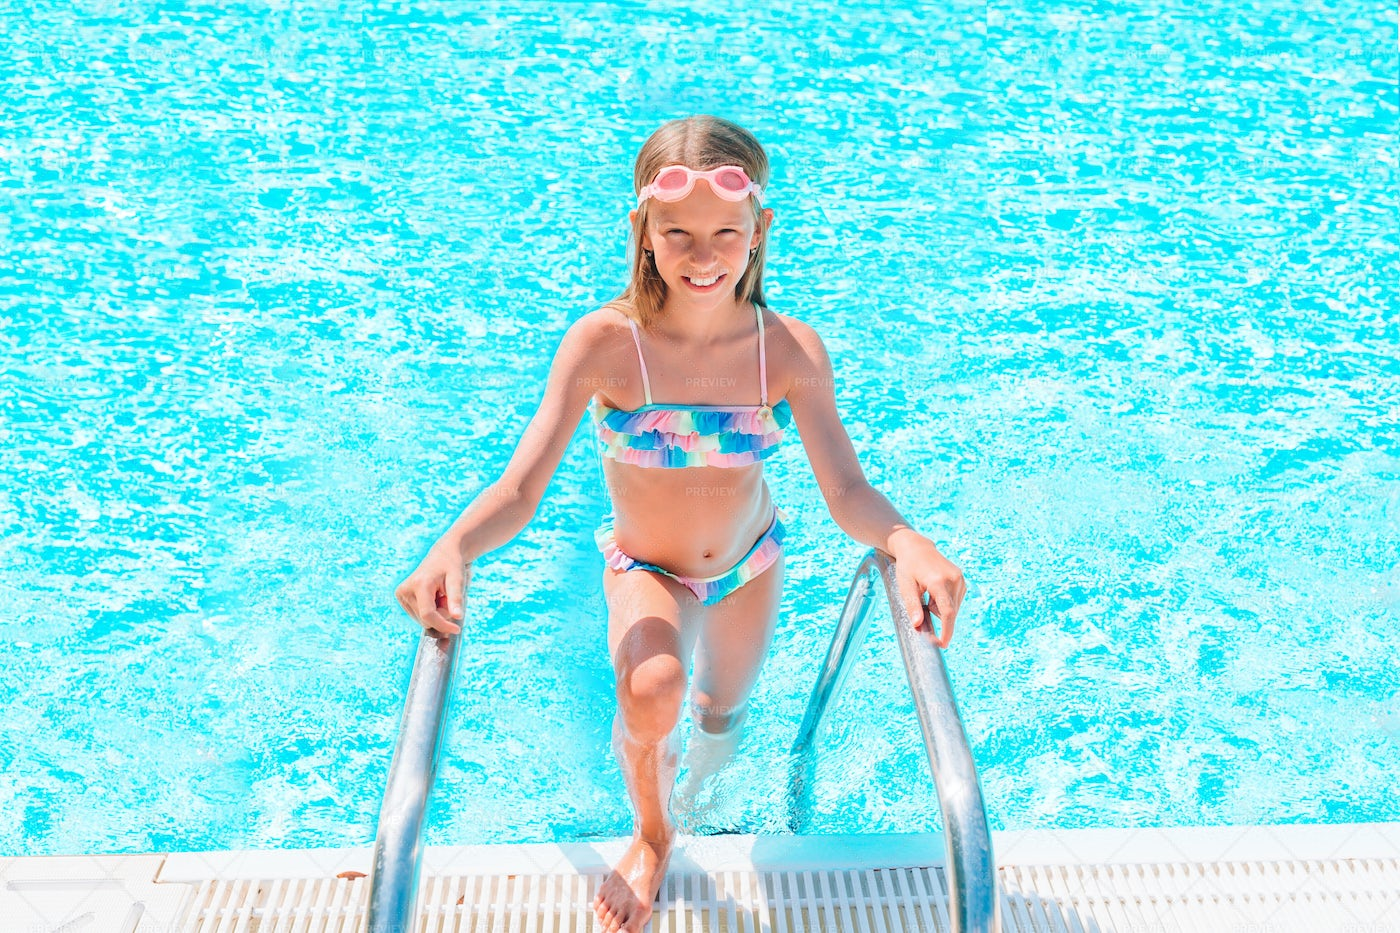 Happy Girl In A Swimming Pool: Stock Photos